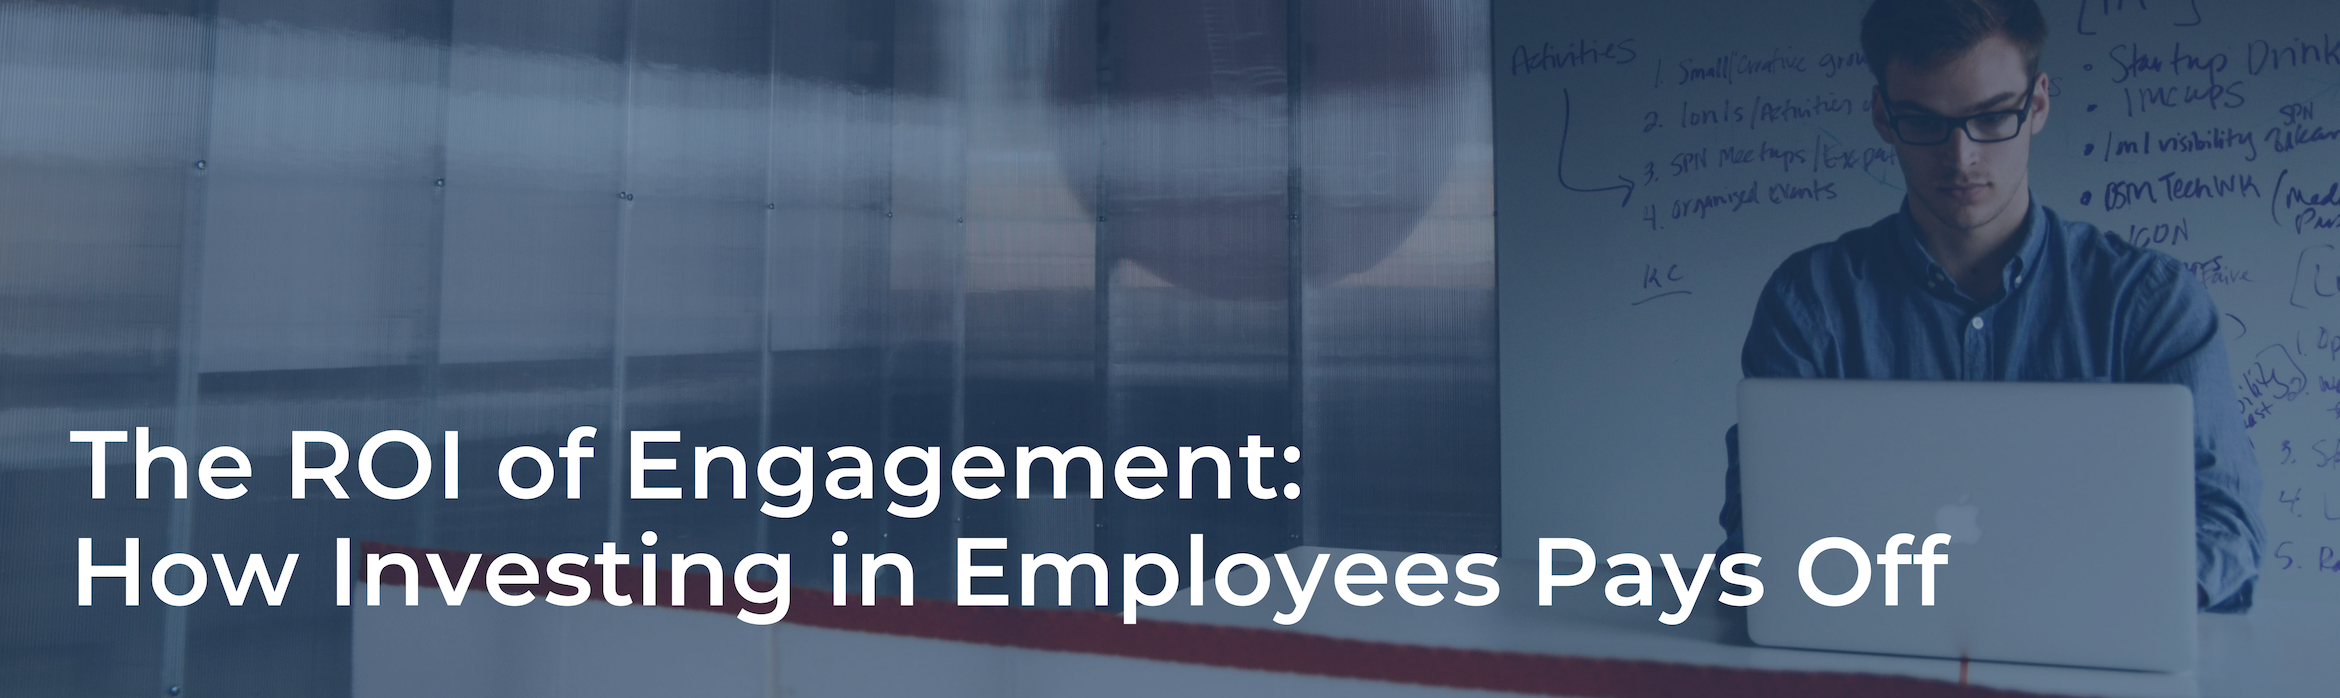 The ROI of Engagement: How Investing in Employees Pays Off